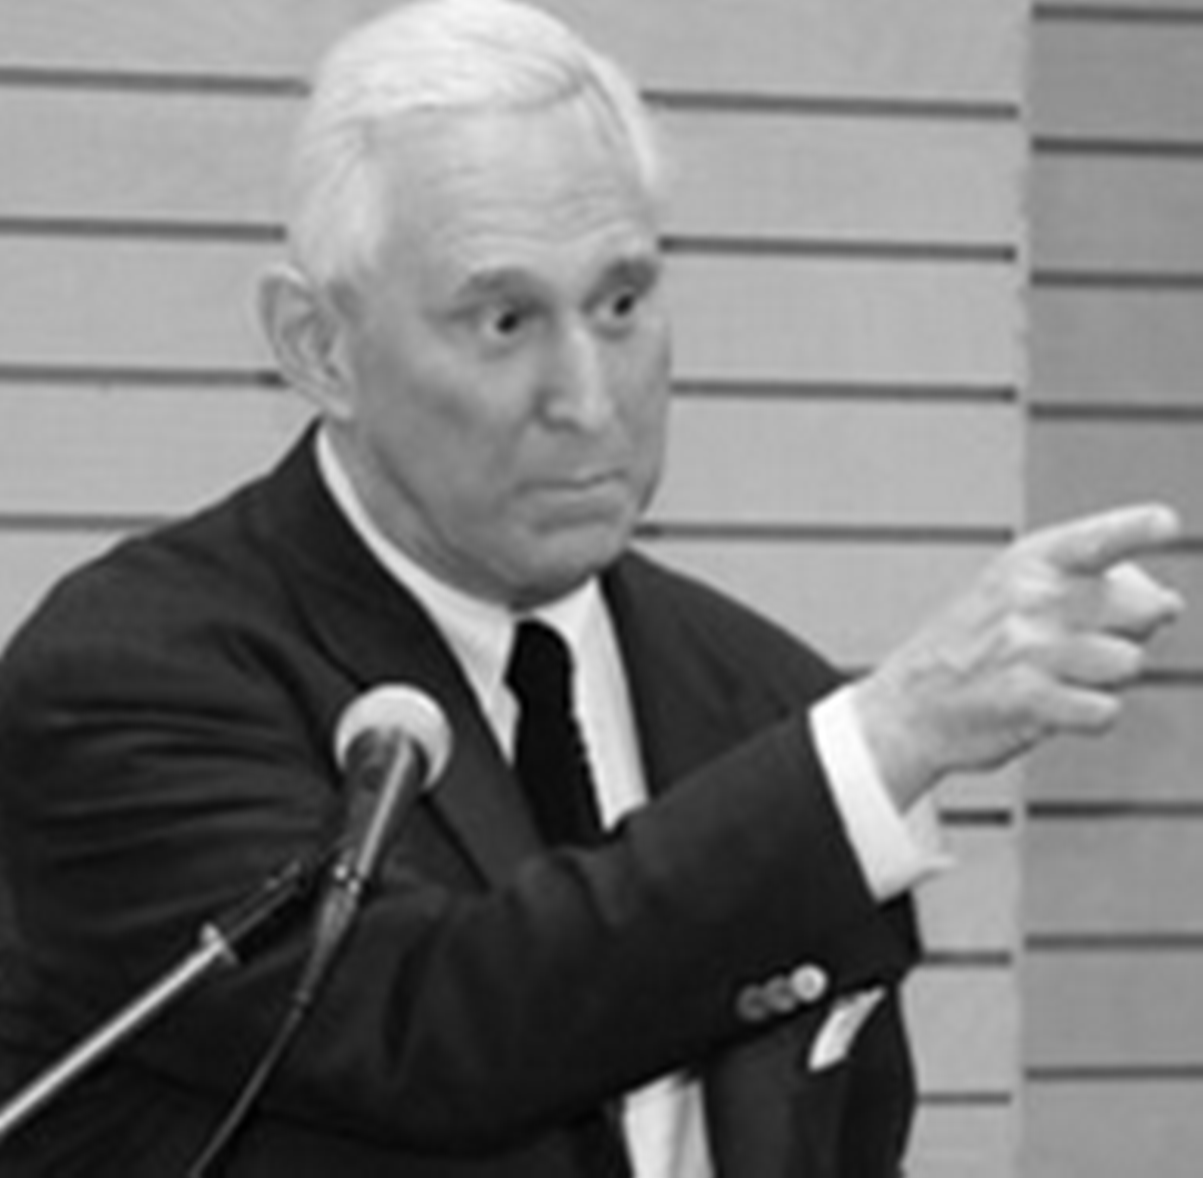 READ: A Note On Elite Deviance, And The Work Of Roger Stone